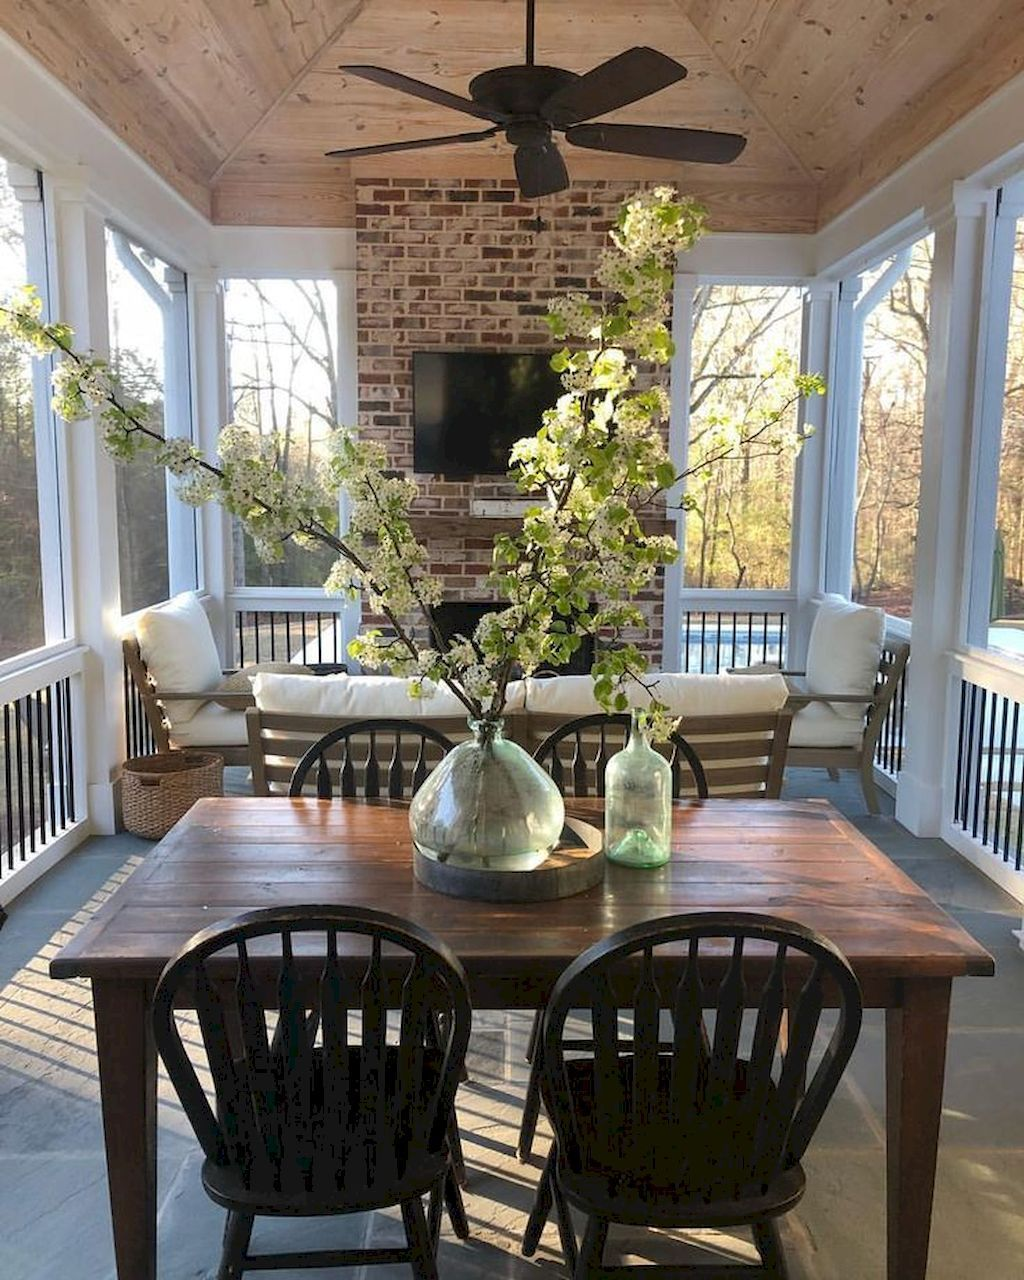 Home Decorating Ideas Farmhouse Gorgeous 60 Cozy Modern: 60 Cozy Modern Farmhouse Sunroom Decor Ideas : We All Know